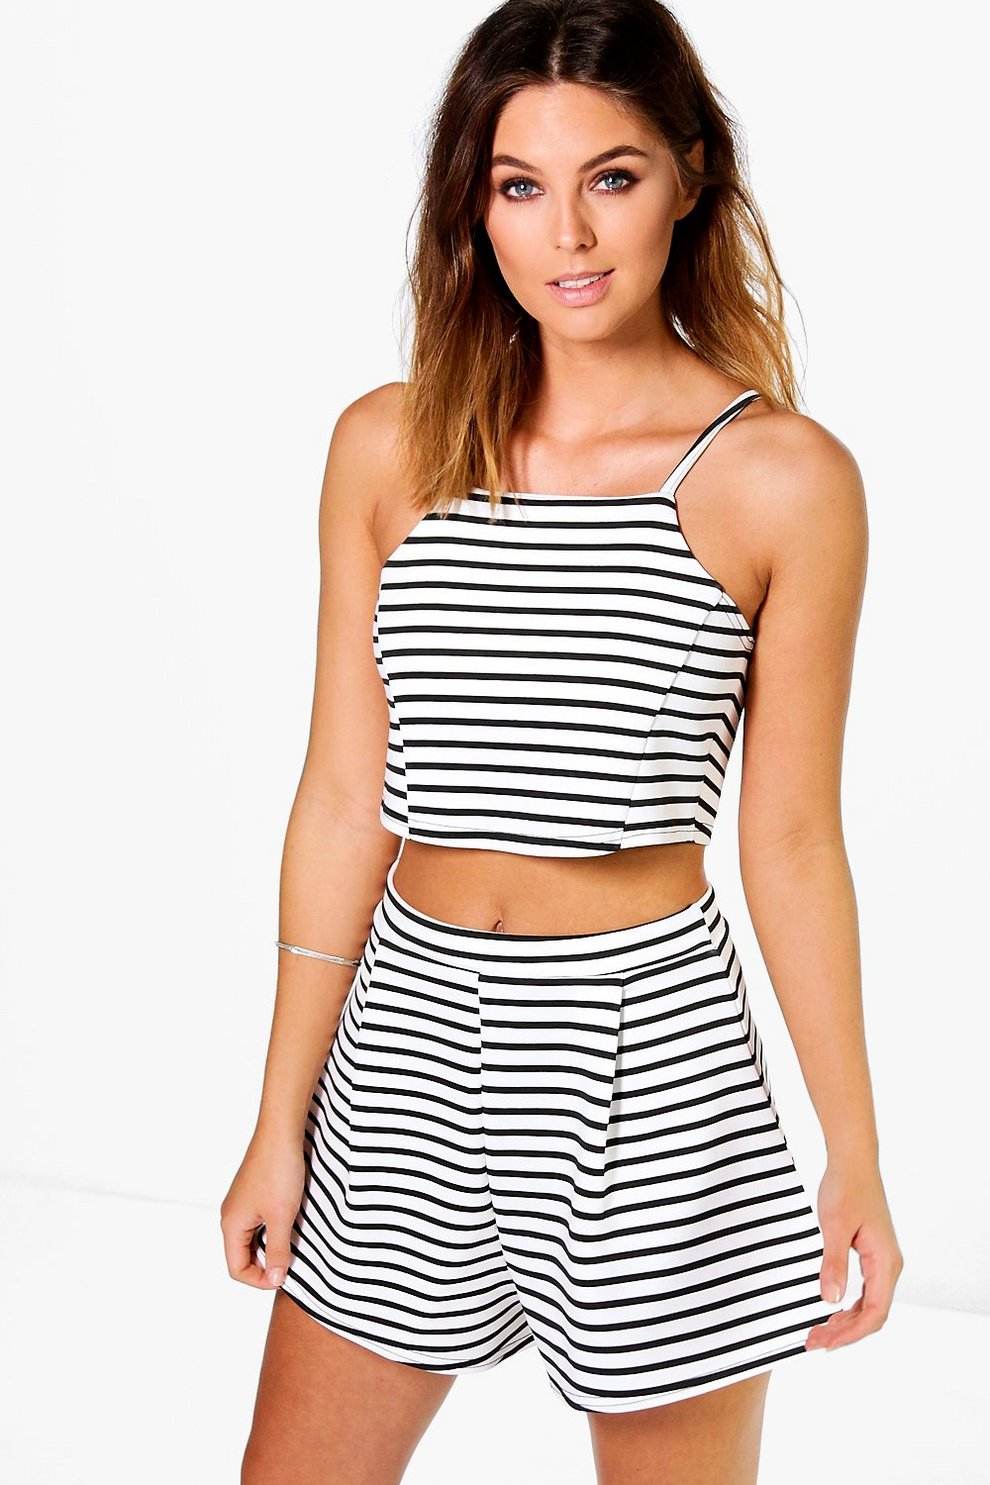 973c4f1c15 Beci Striped Crop Top + Short Co-ord Set | Boohoo